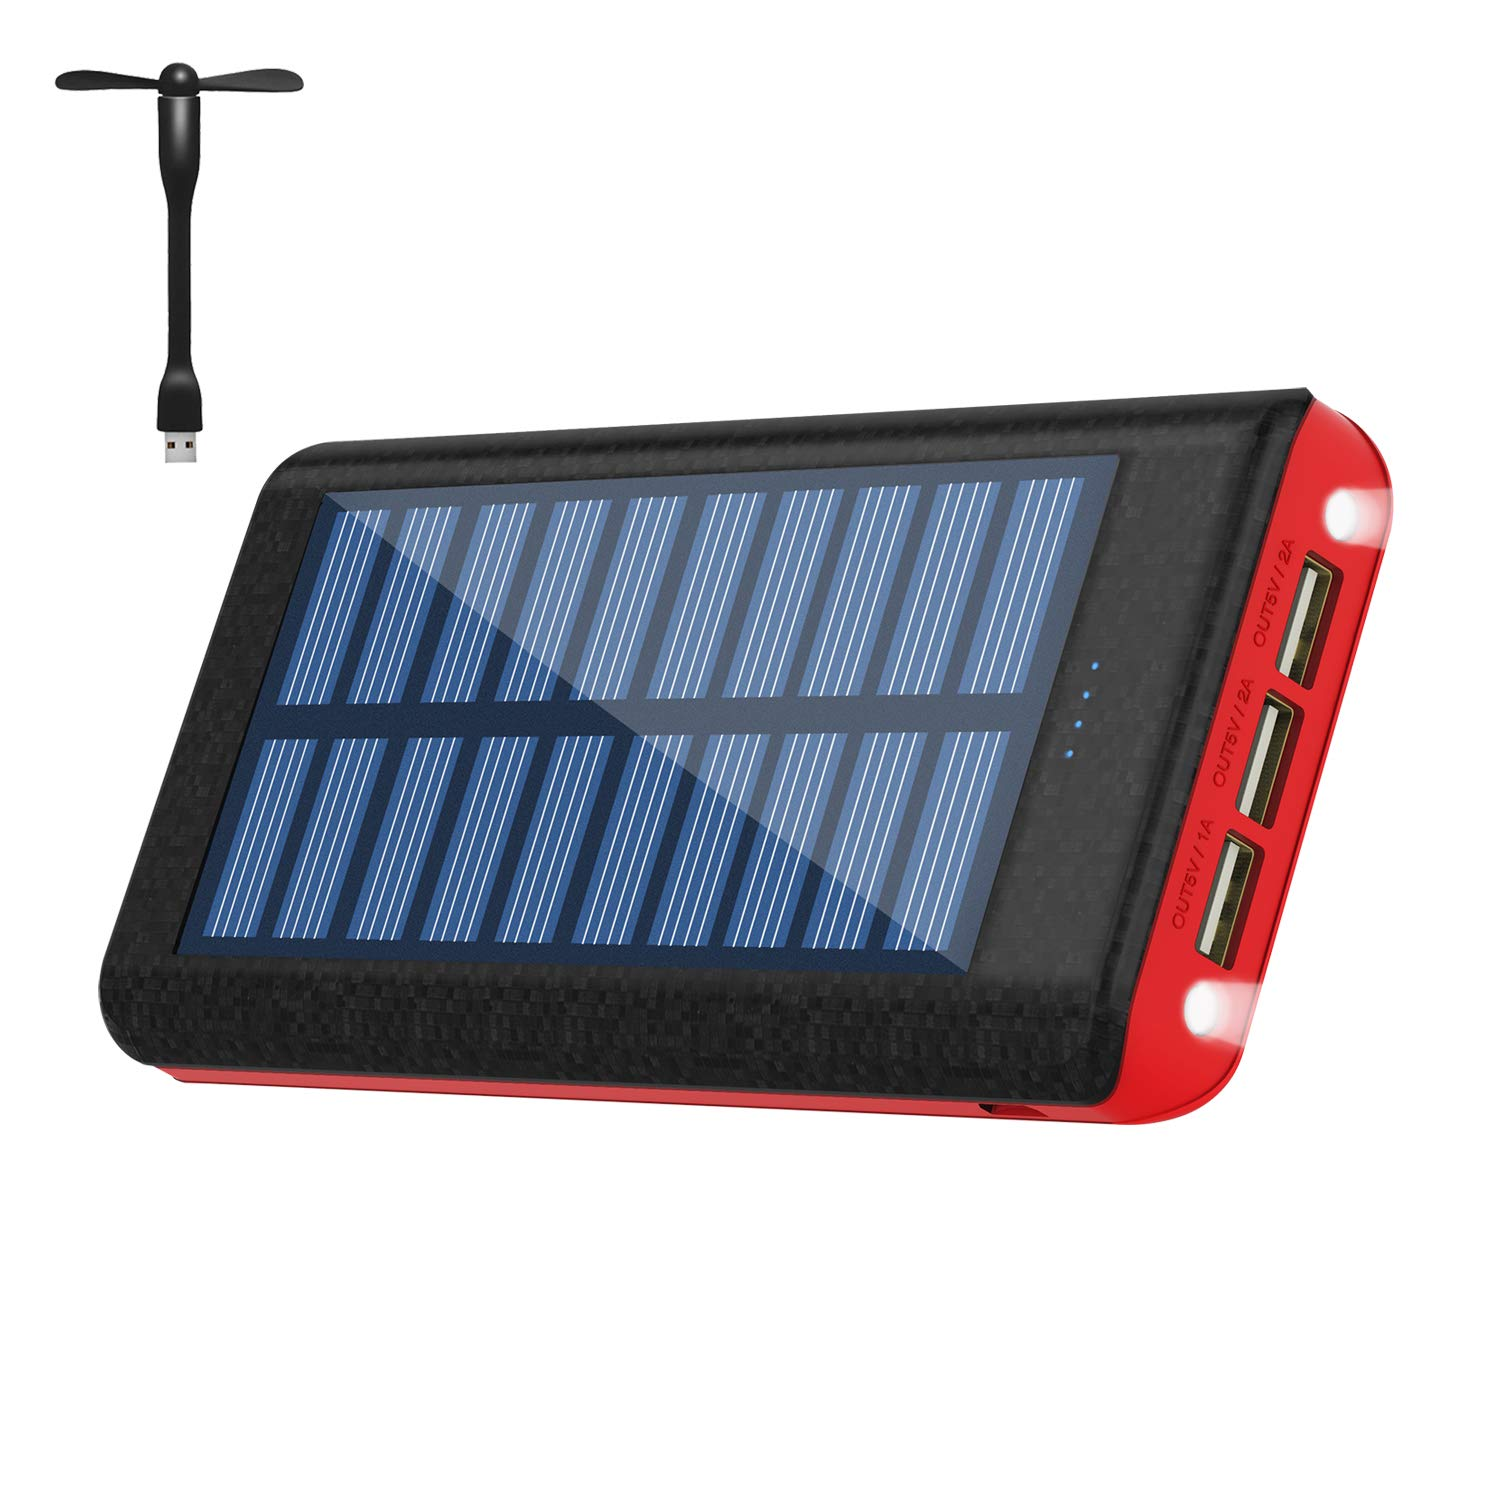 Solar Charger Power Bank 25000 mAh Portable Charger 3 Output Battery Pack with Flashlight Including Small USB Fan Compatible Android Phone Tablet and Other Smart Devices by Kenruipu